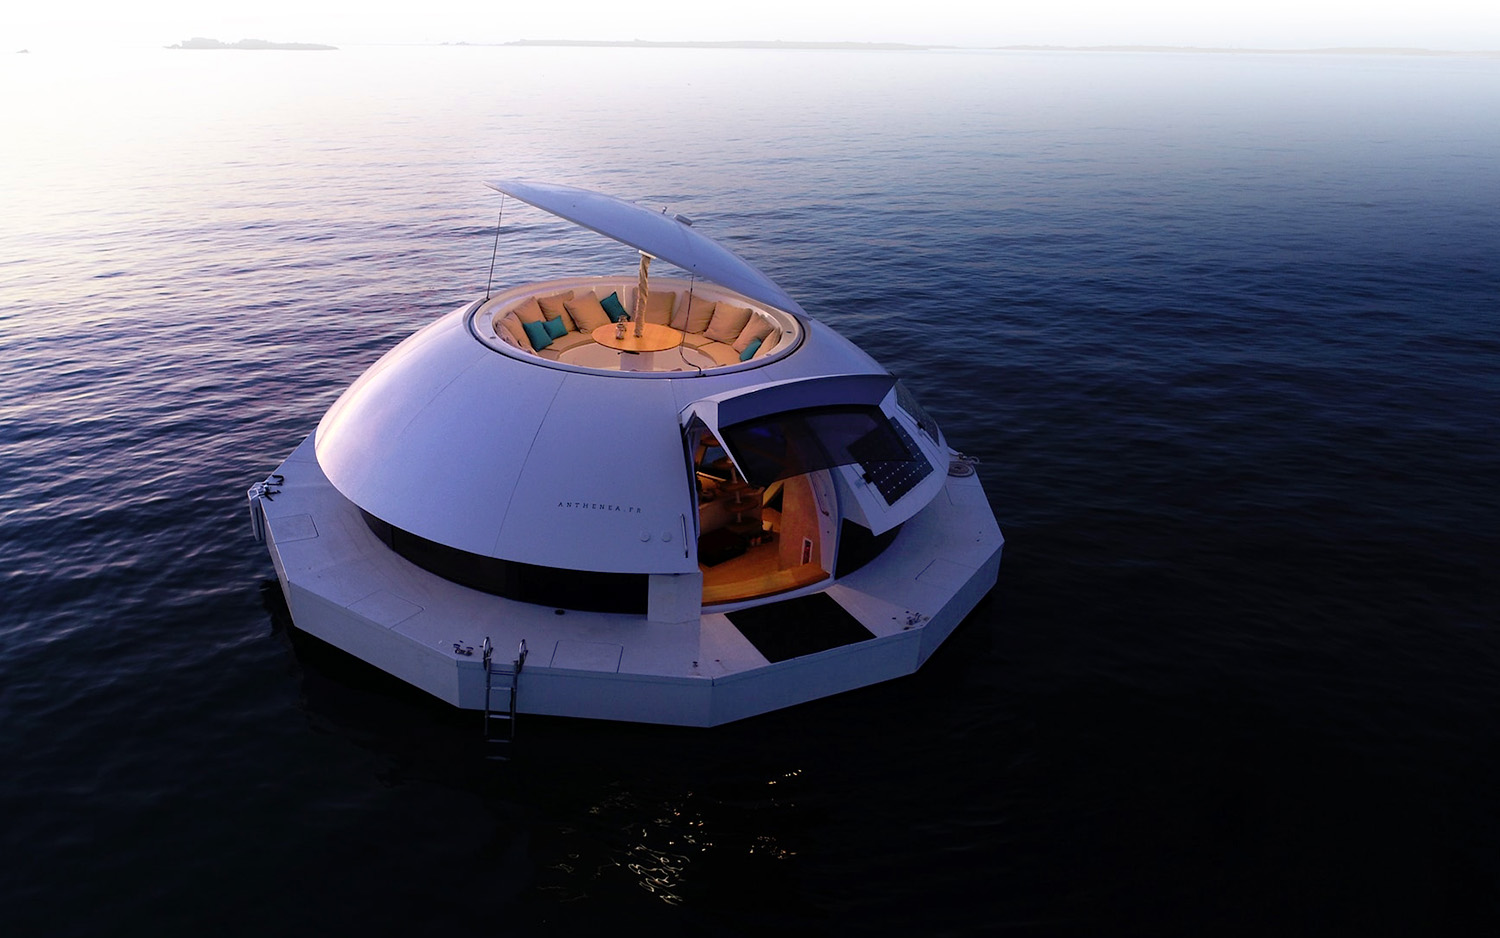 Smart Floating Space